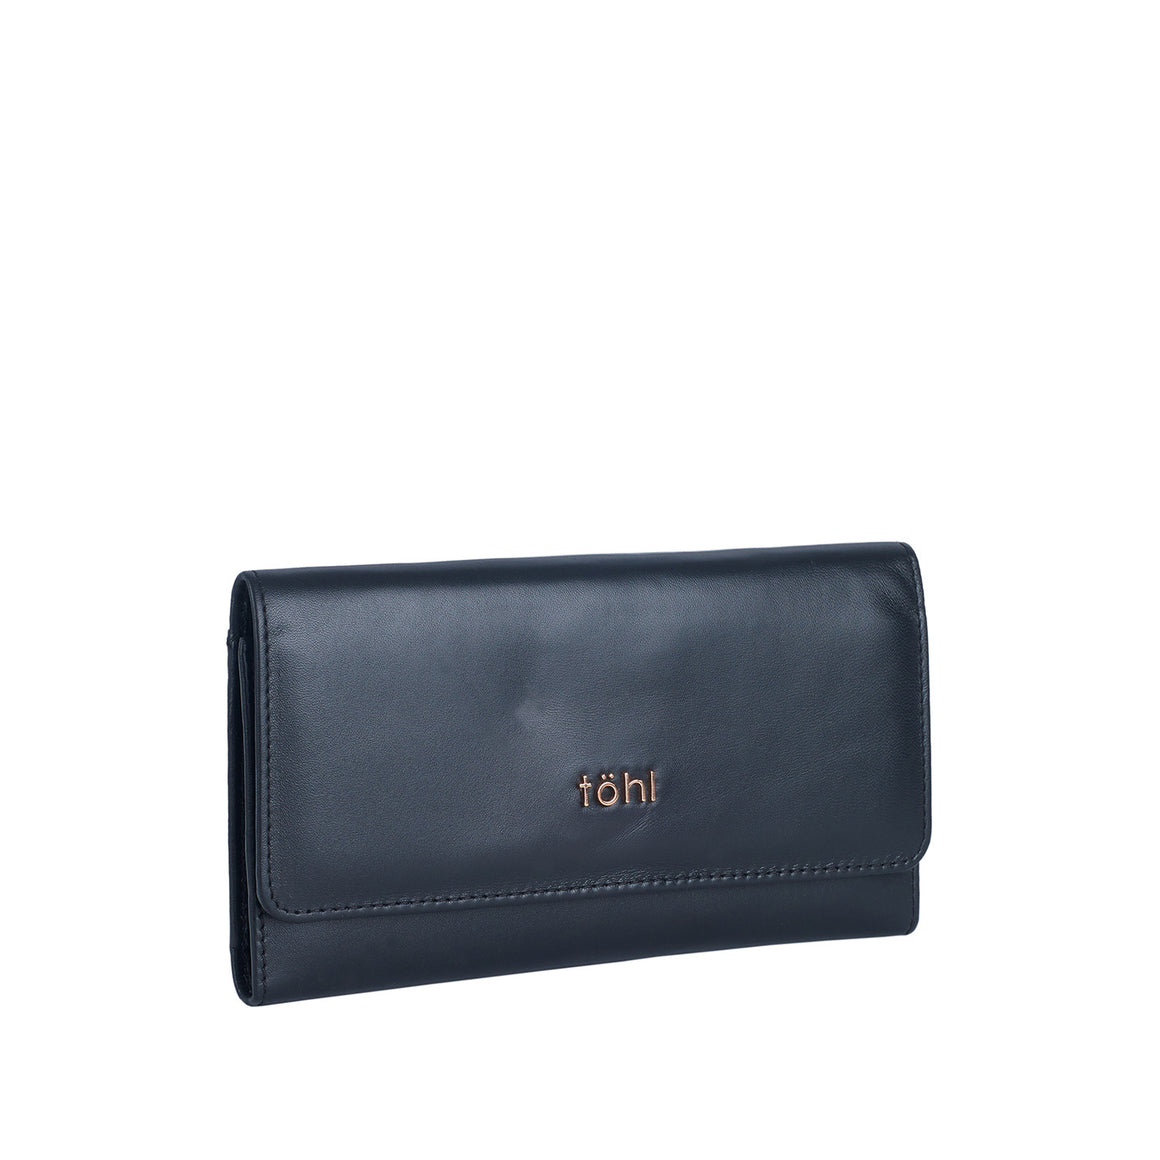 WT 0012 - TOHL BOBBI WOMEN'S FLAPOVER WALLET - CHARCOAL BLACK